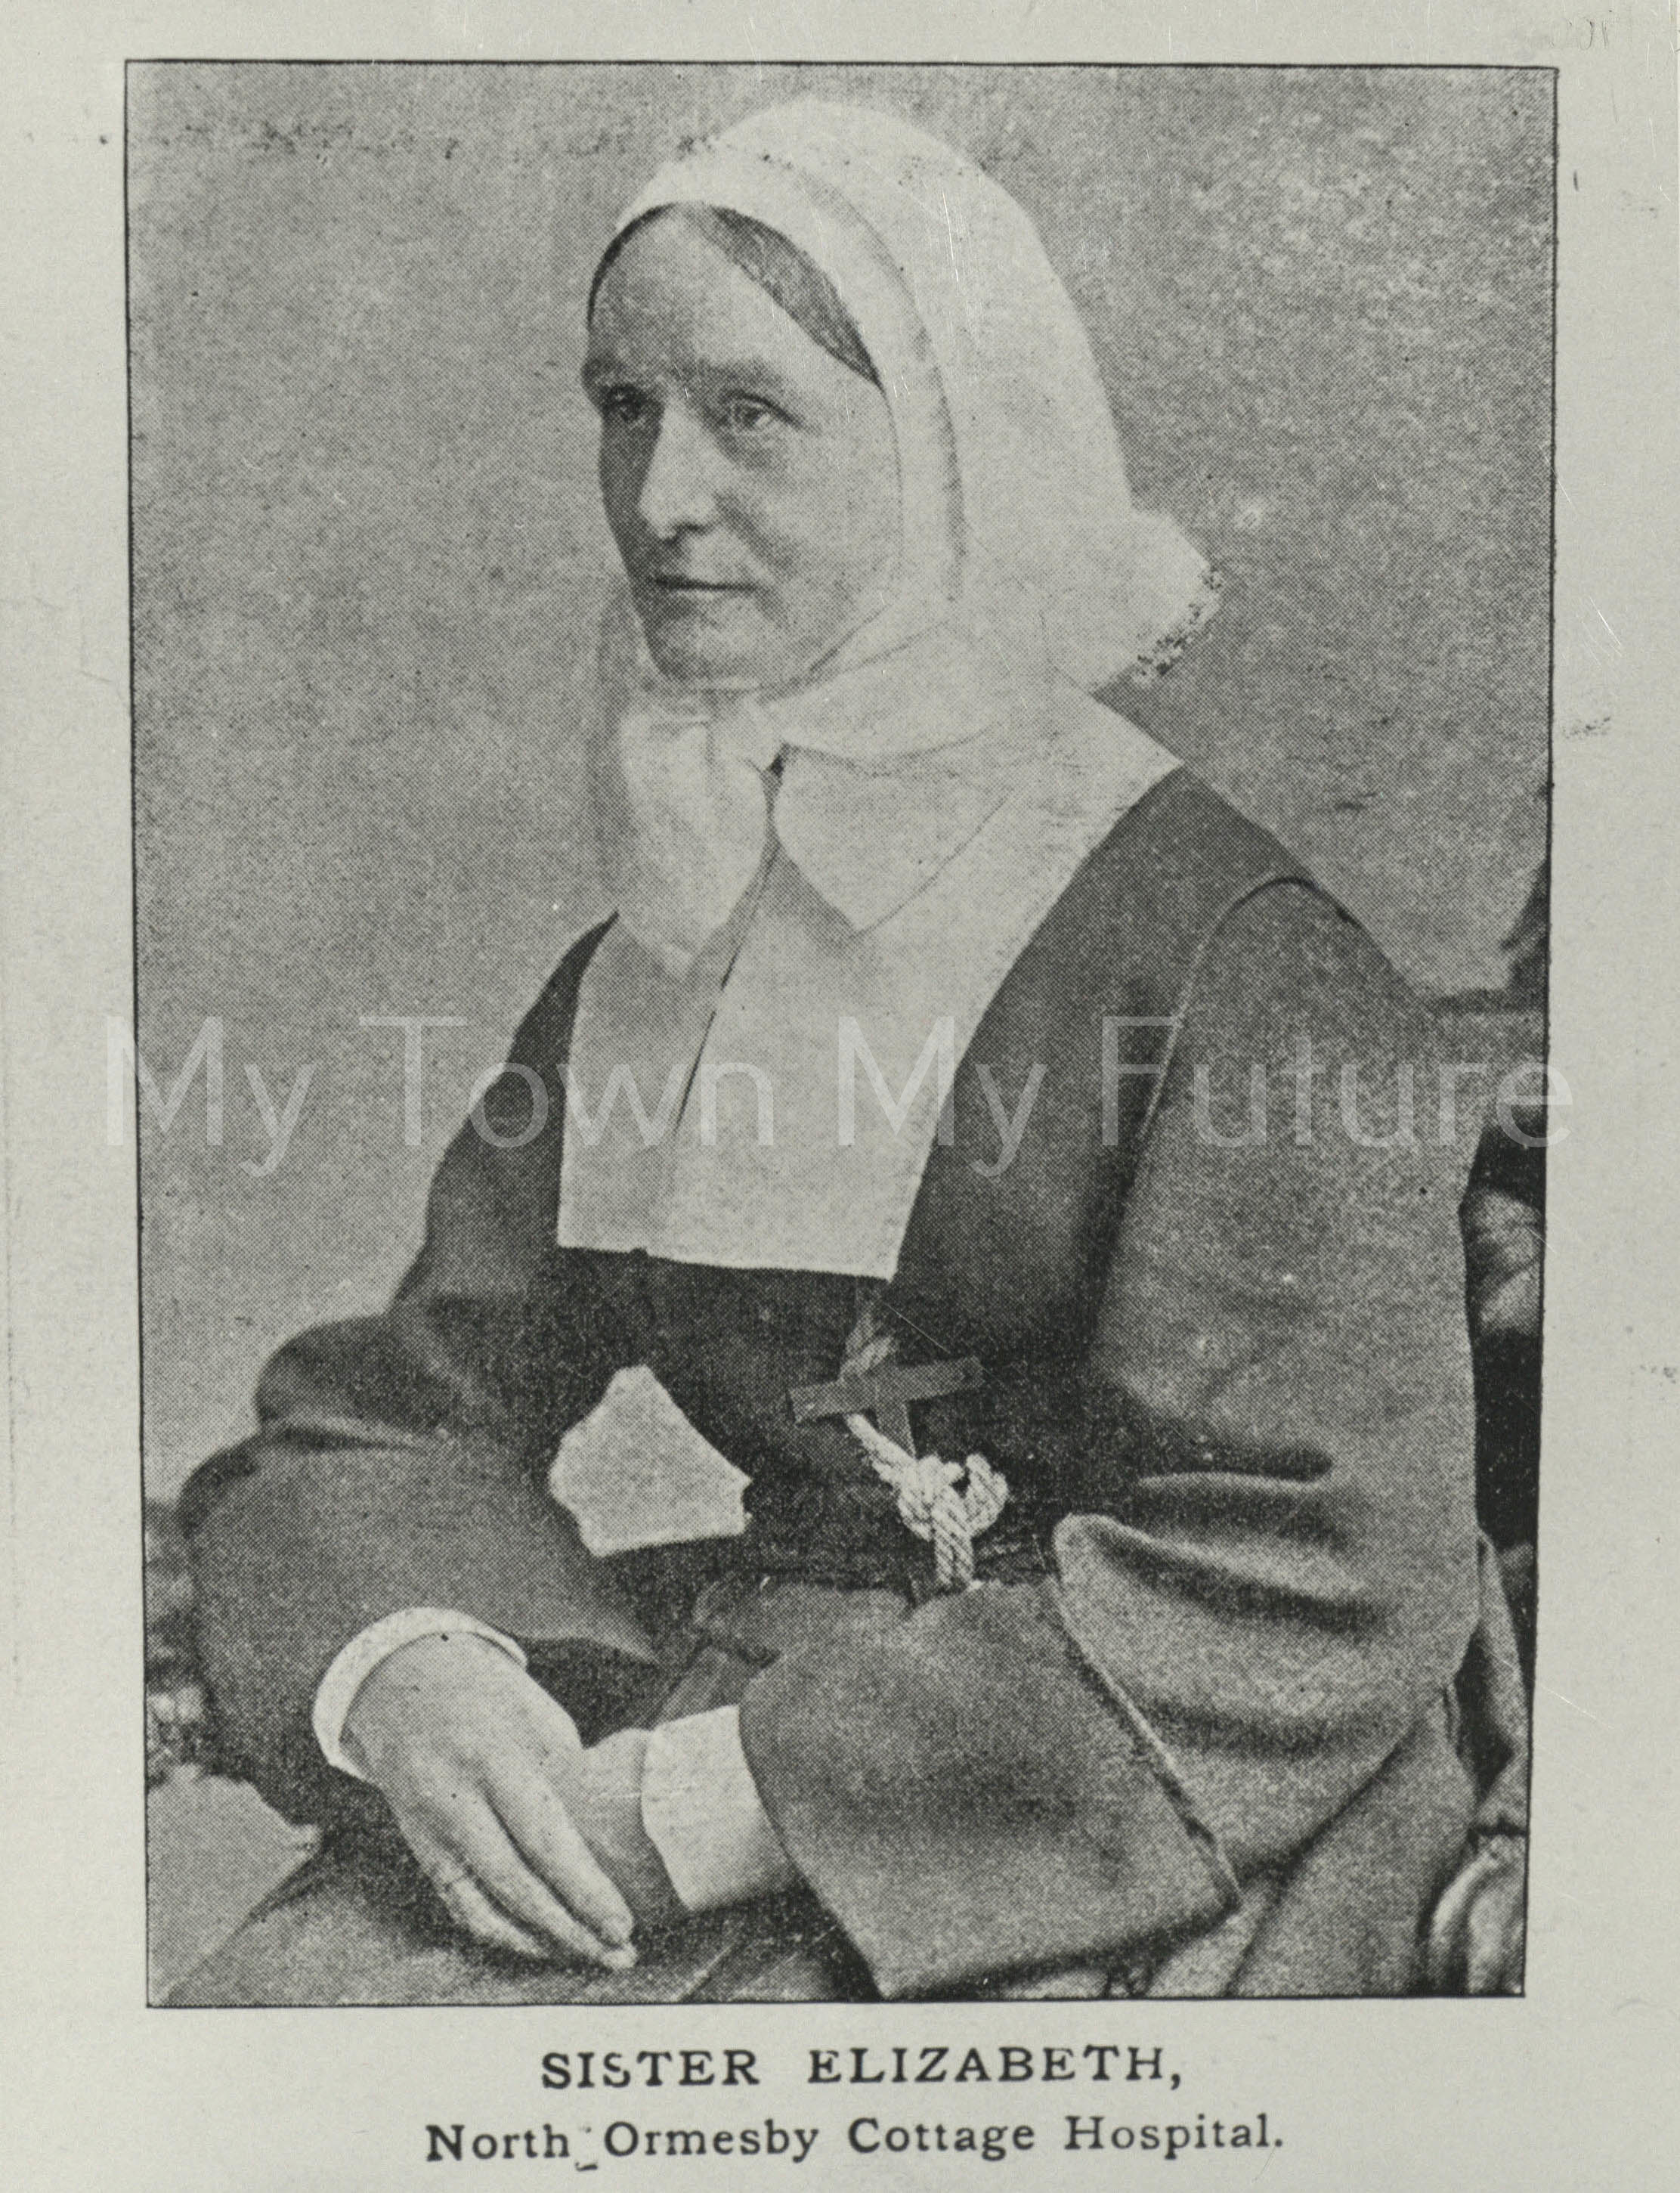 Sister Elizabeth North Ormesby Cottage Hospital 1895